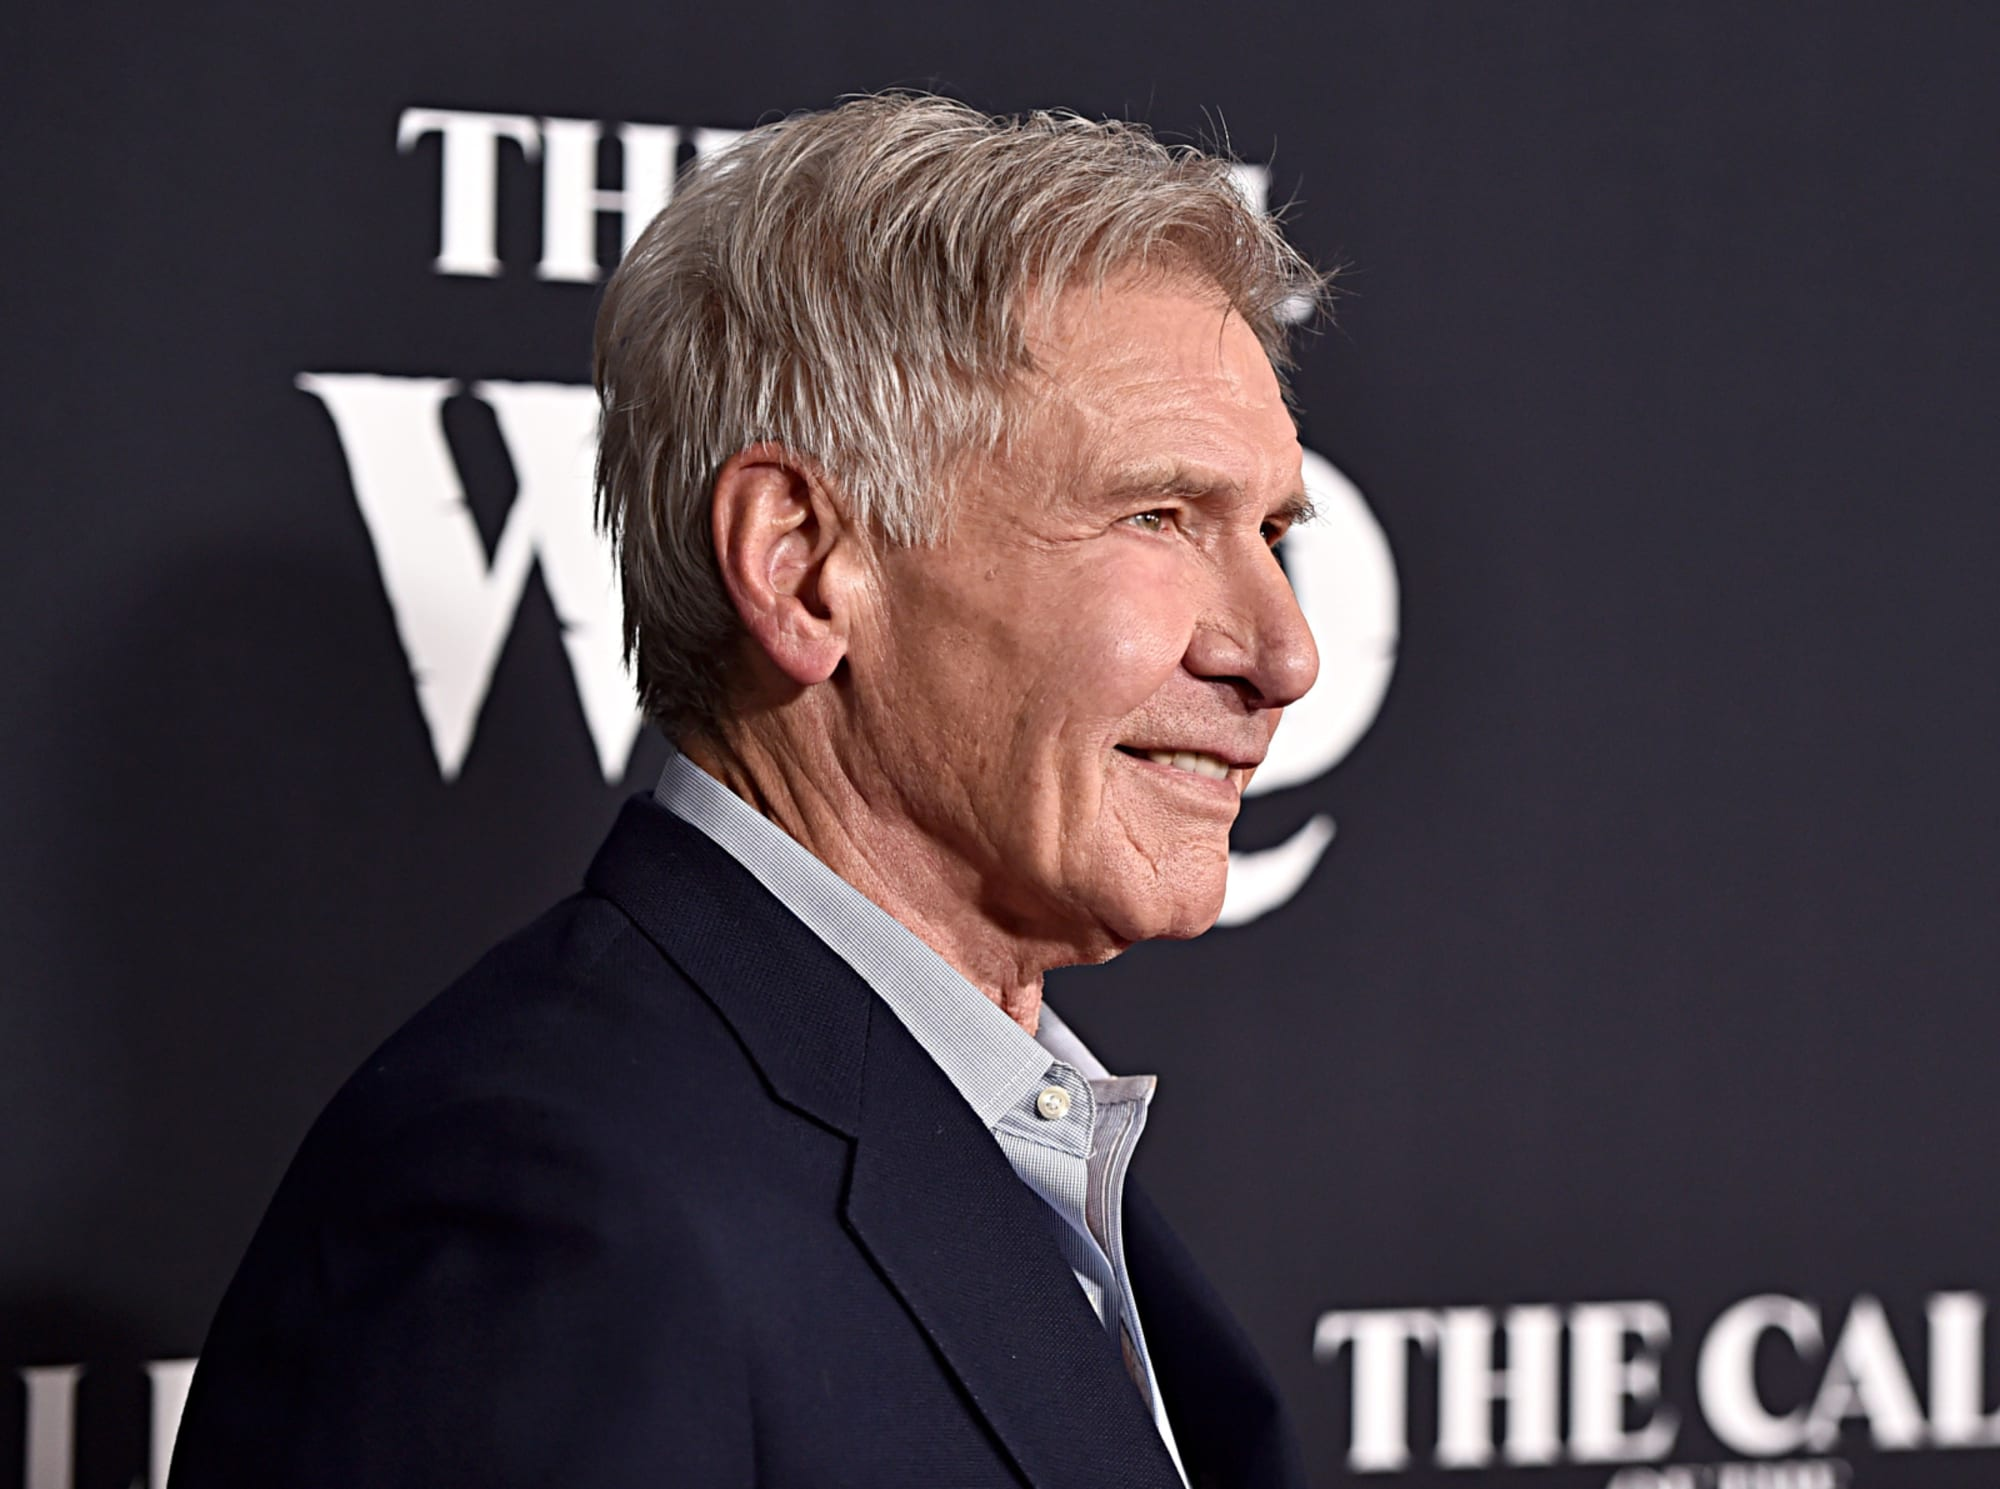 Harrison Ford injures on the set of Indiana Jones 5